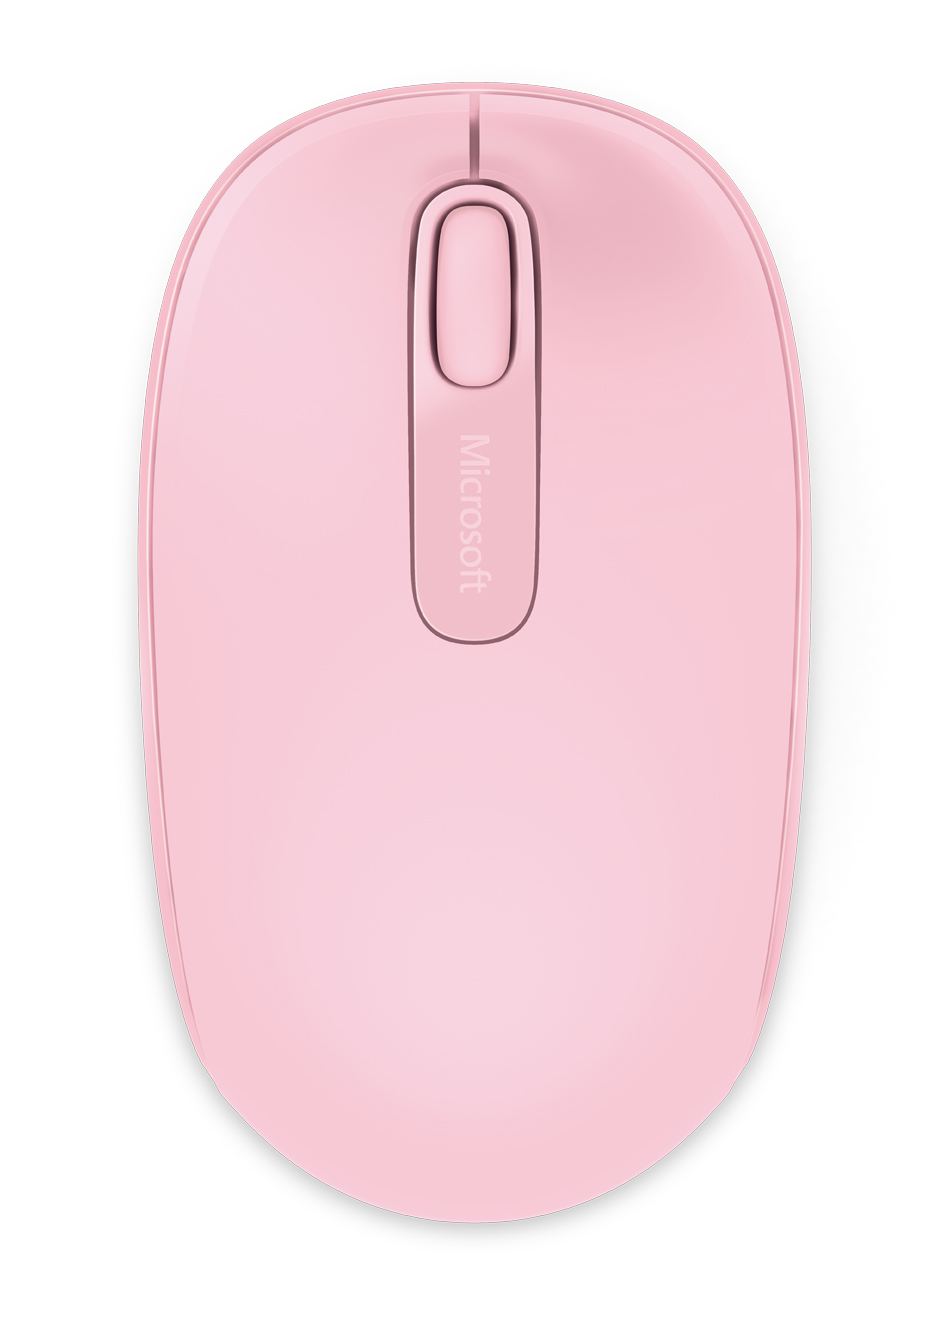 Microsoft Wireless Mobile Mouse 1850, Light Orchid